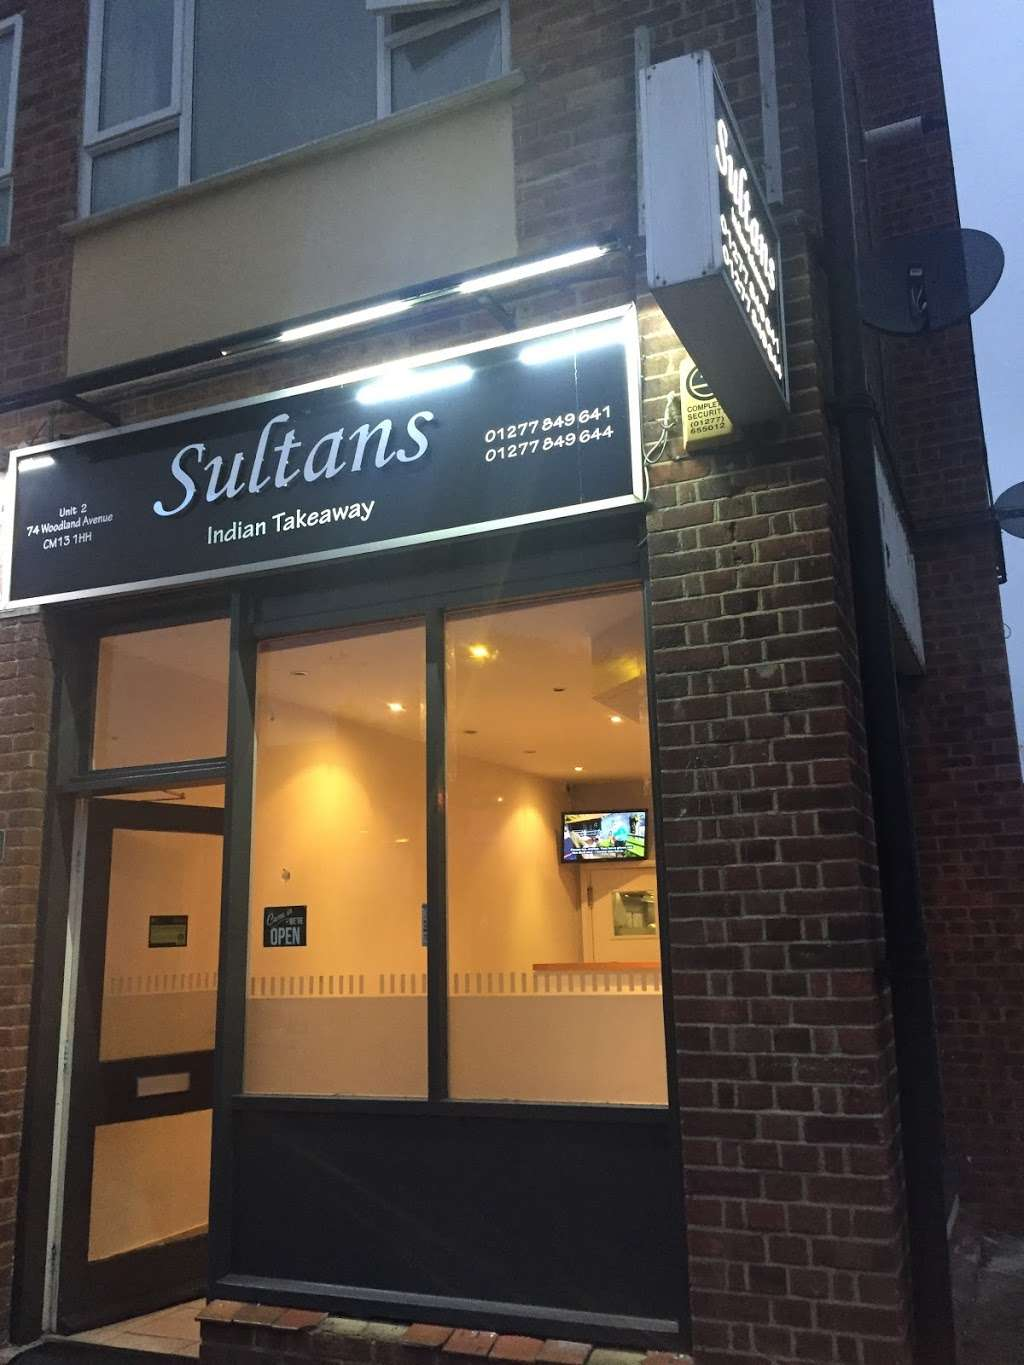 Sultans Indian Takeaway Hutton Essex - meal takeaway  | Photo 2 of 10 | Address: 74a Woodland Ave, Brentwood CM13 1HH, UK | Phone: 01277 849644